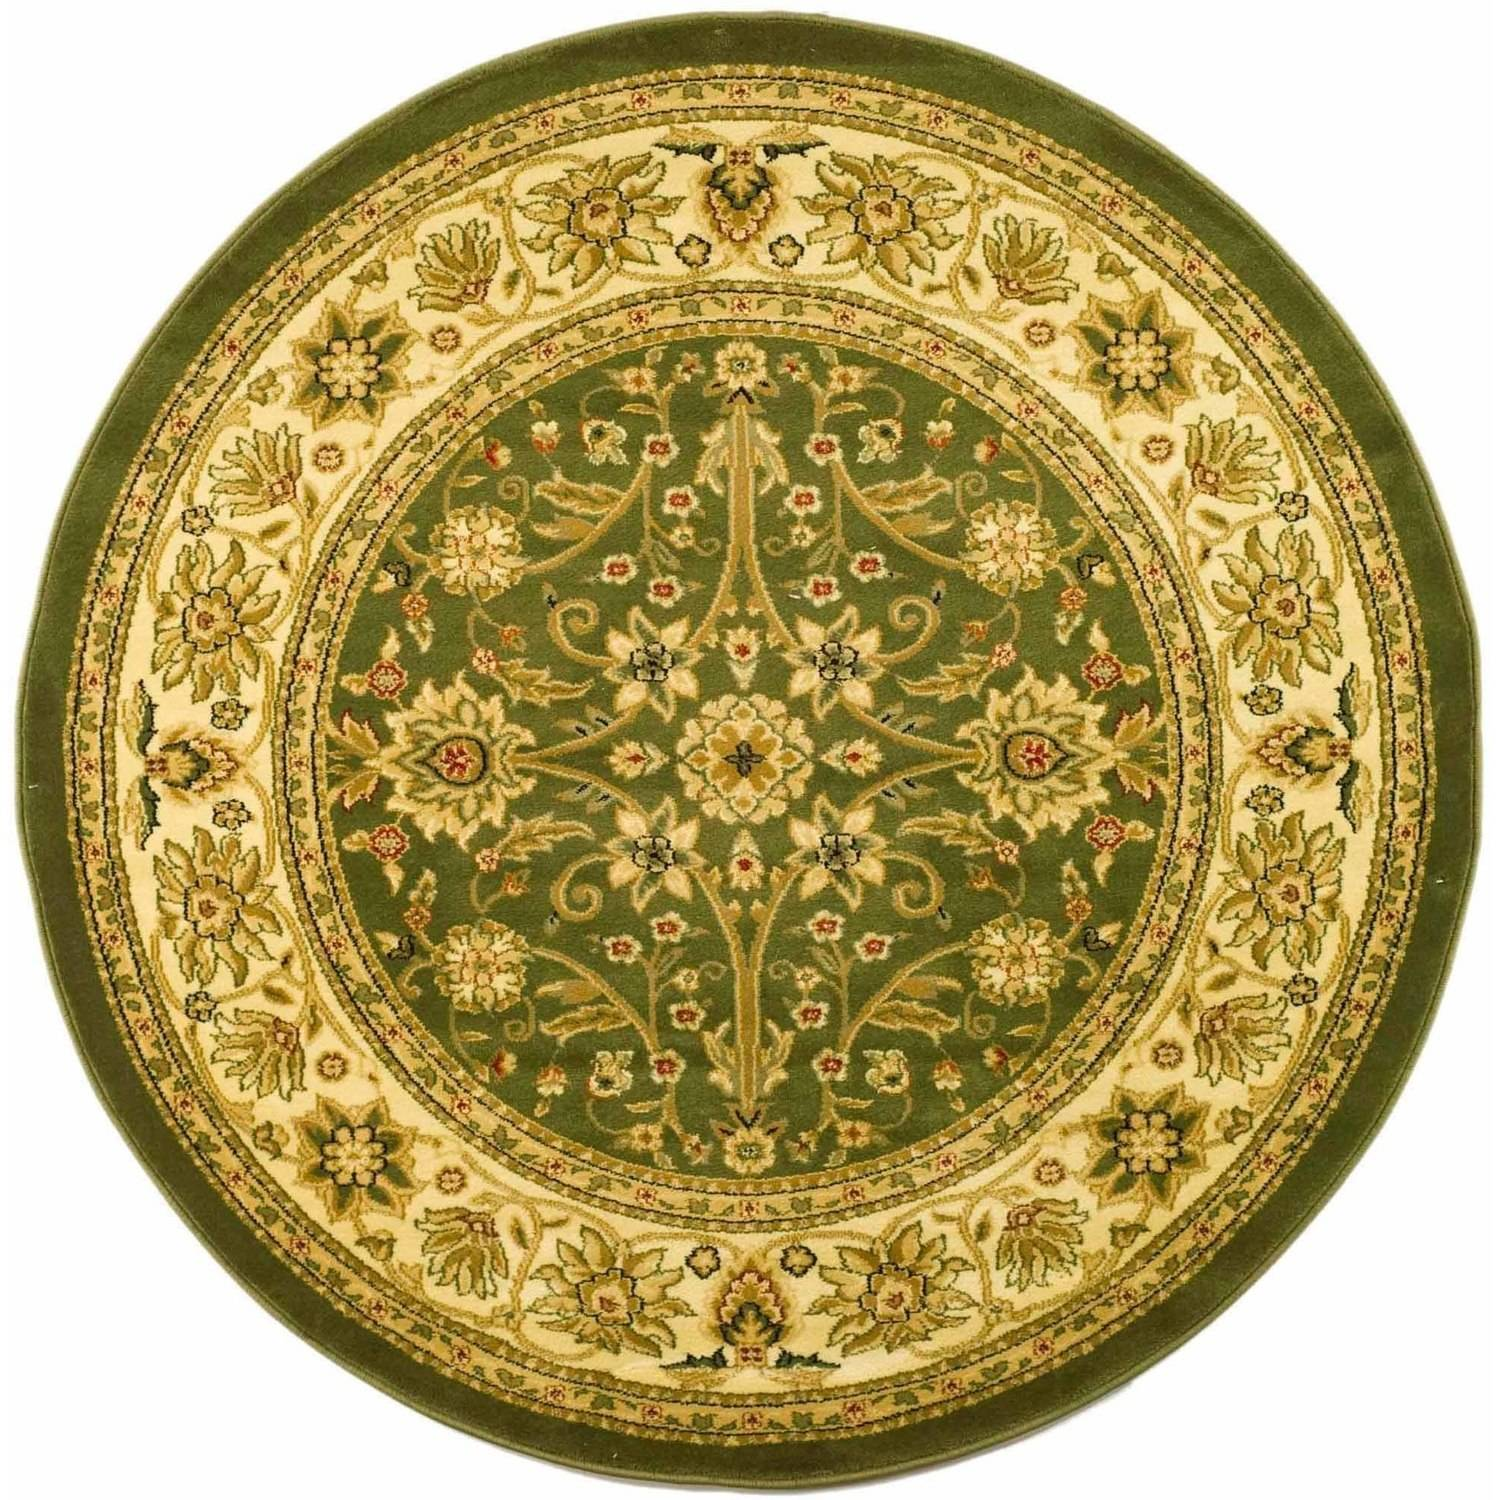 Safavieh Lyndhurst Traditional Round Area Rug, Sage and Ivory, 8' Round